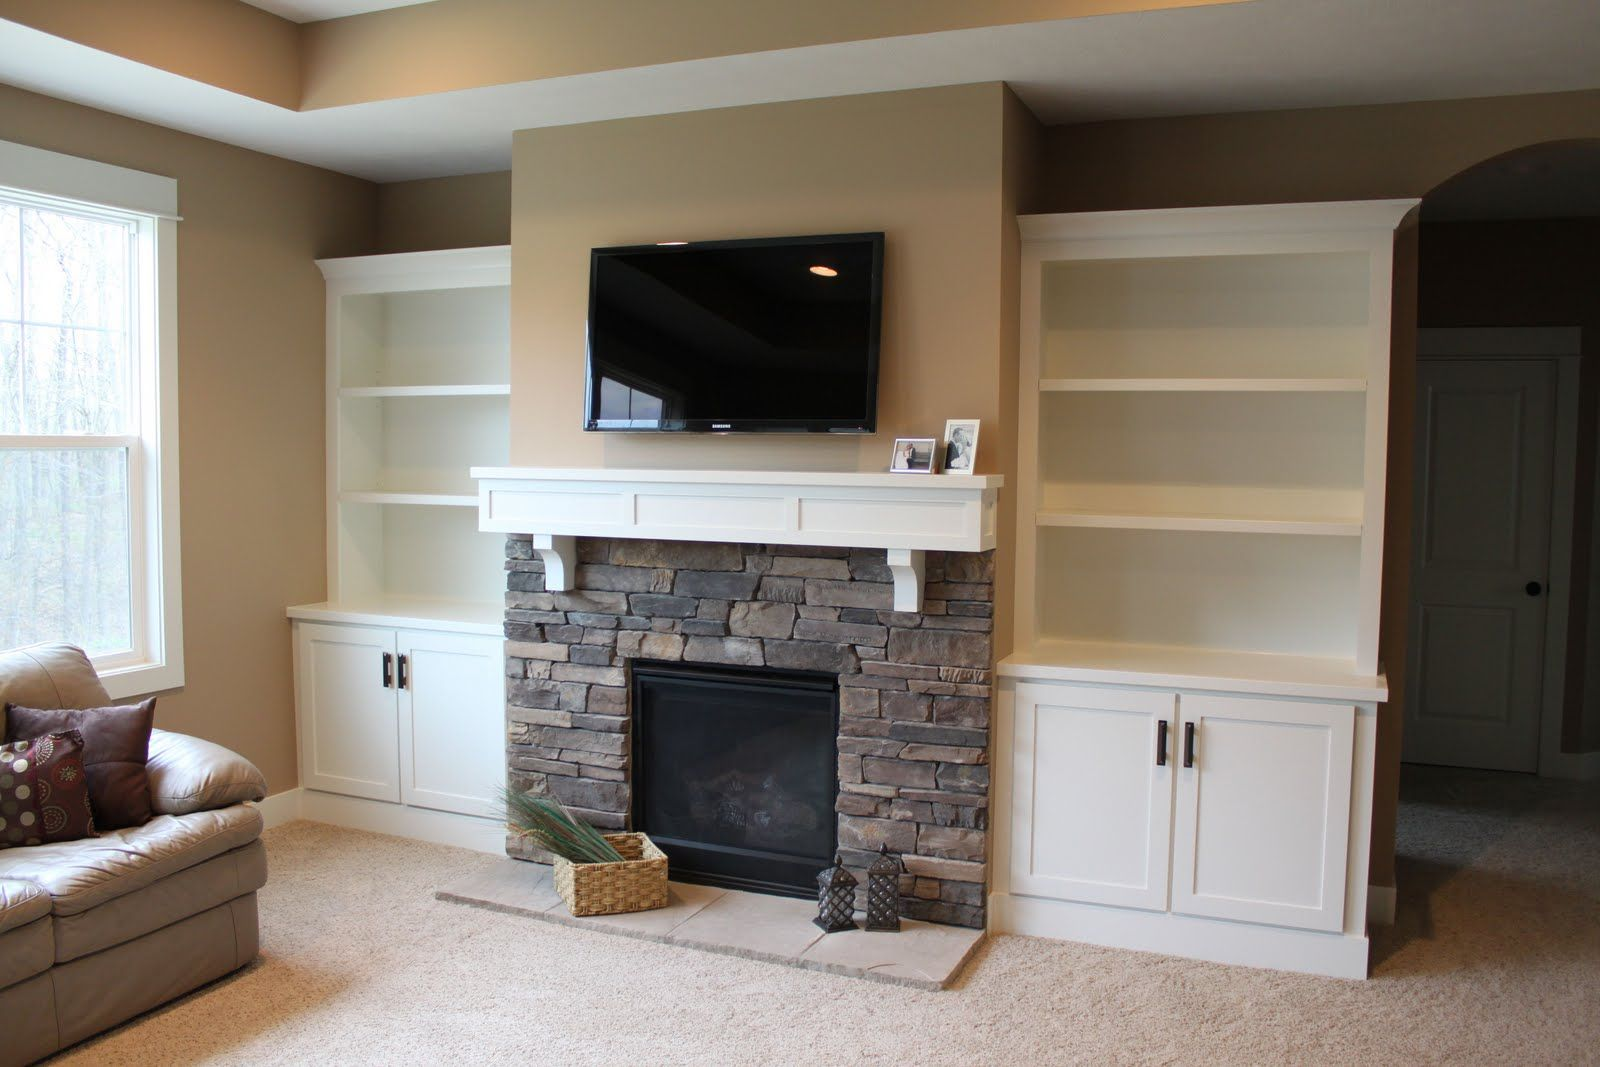 Built In Shelves Surrounding Fireplace Built In Cabinets And